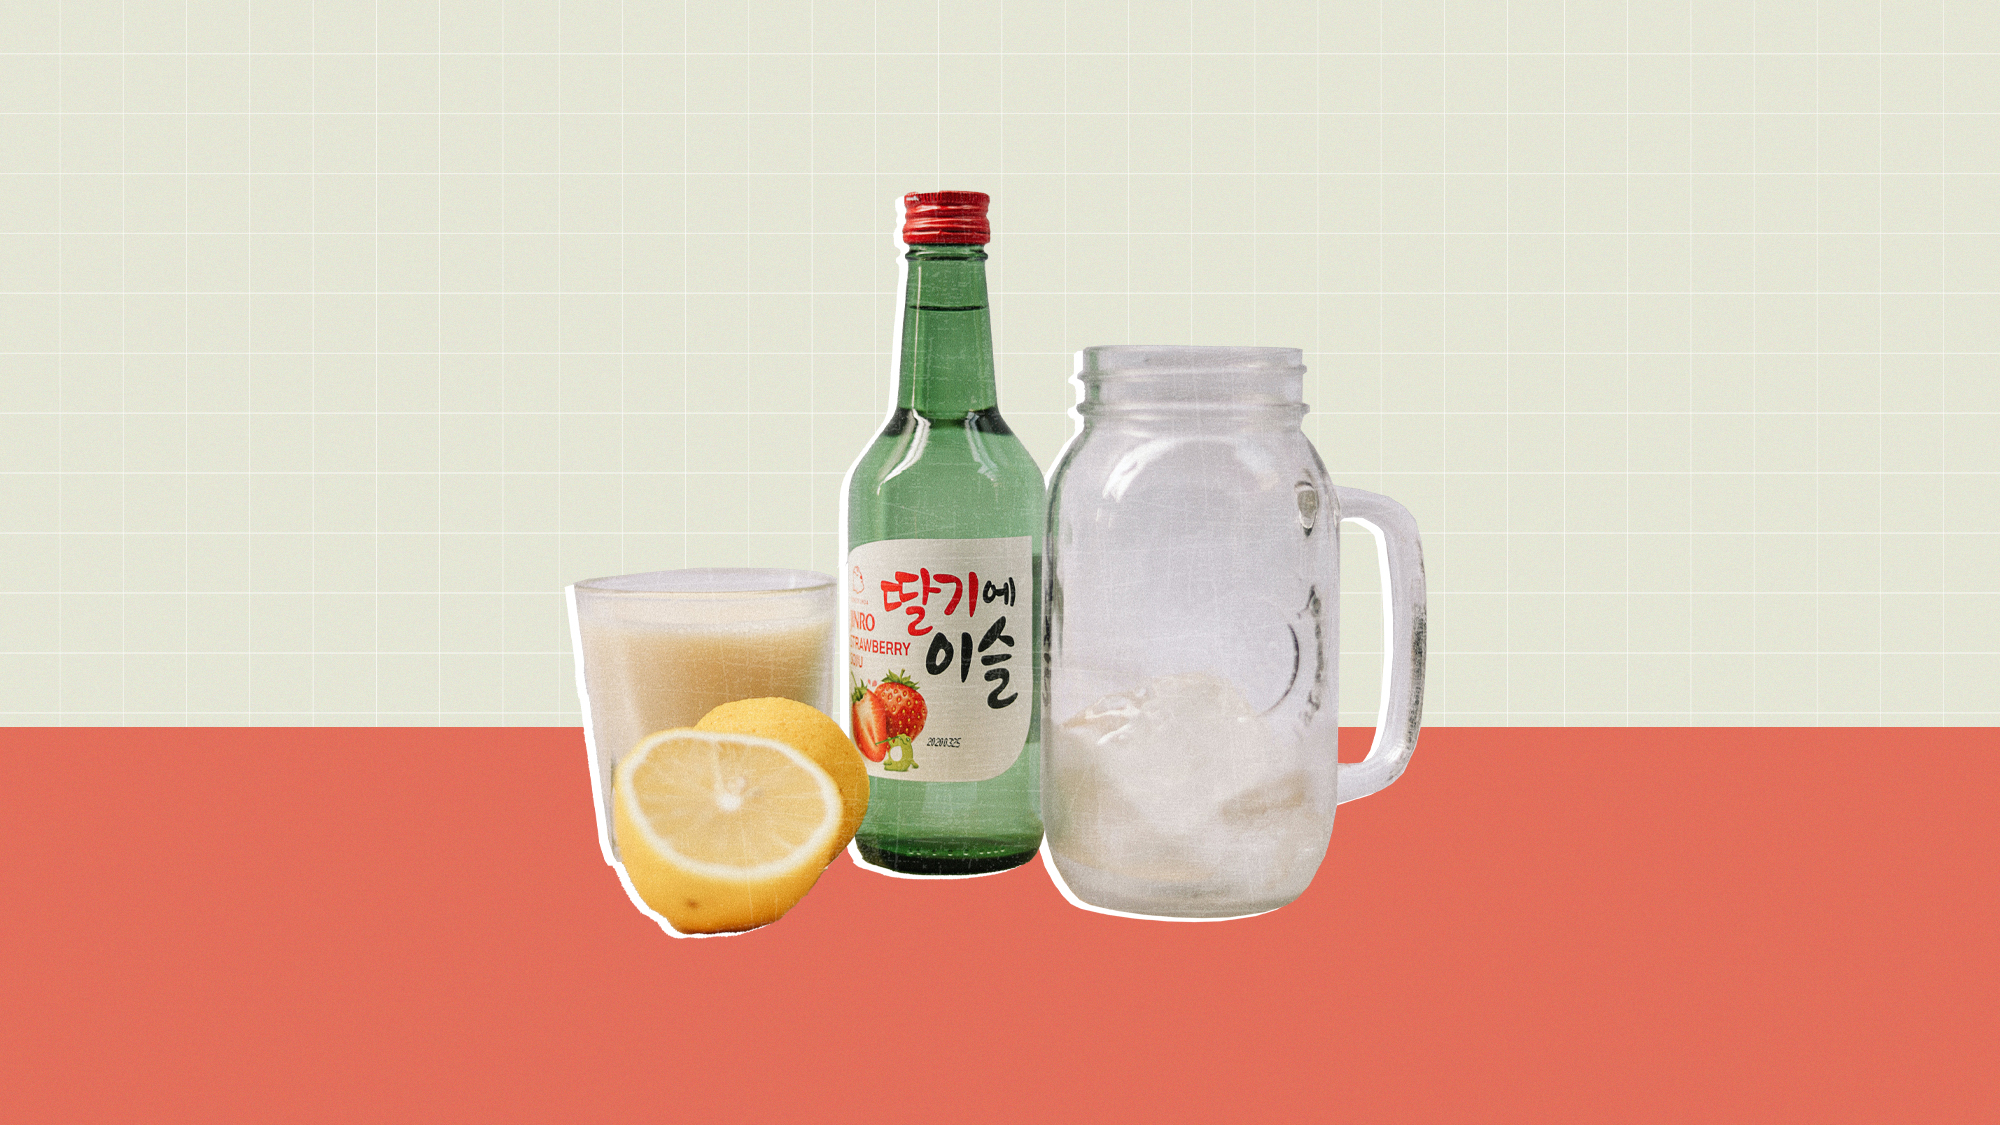 A bottle and glass of Soju with a sliced lemon